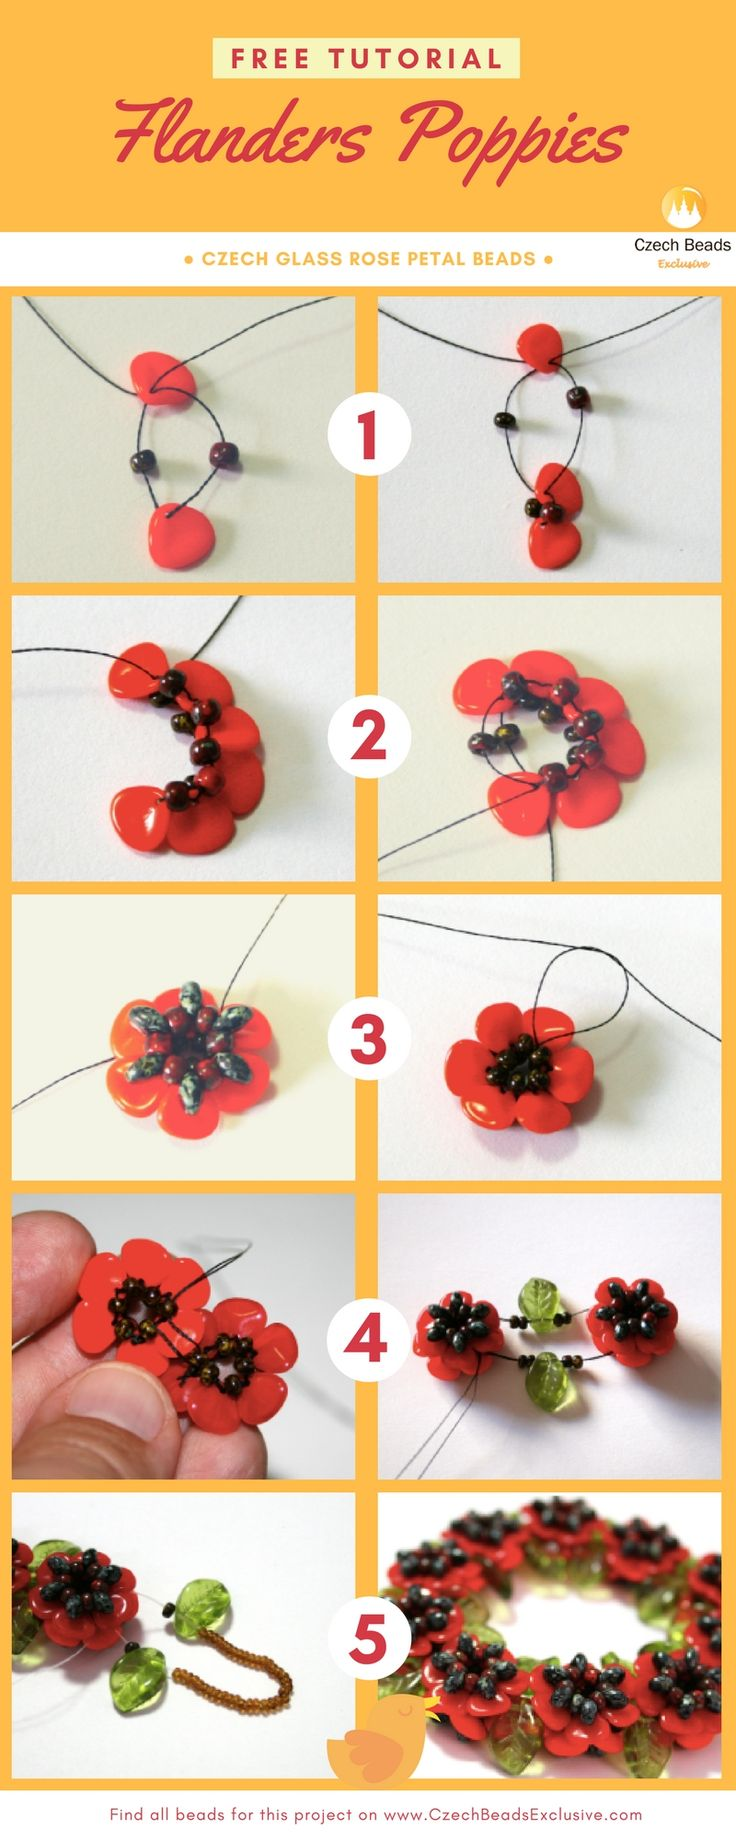 Free Tutorial - Czech Glass Rose Petal Beads - FLANDERS Poppies